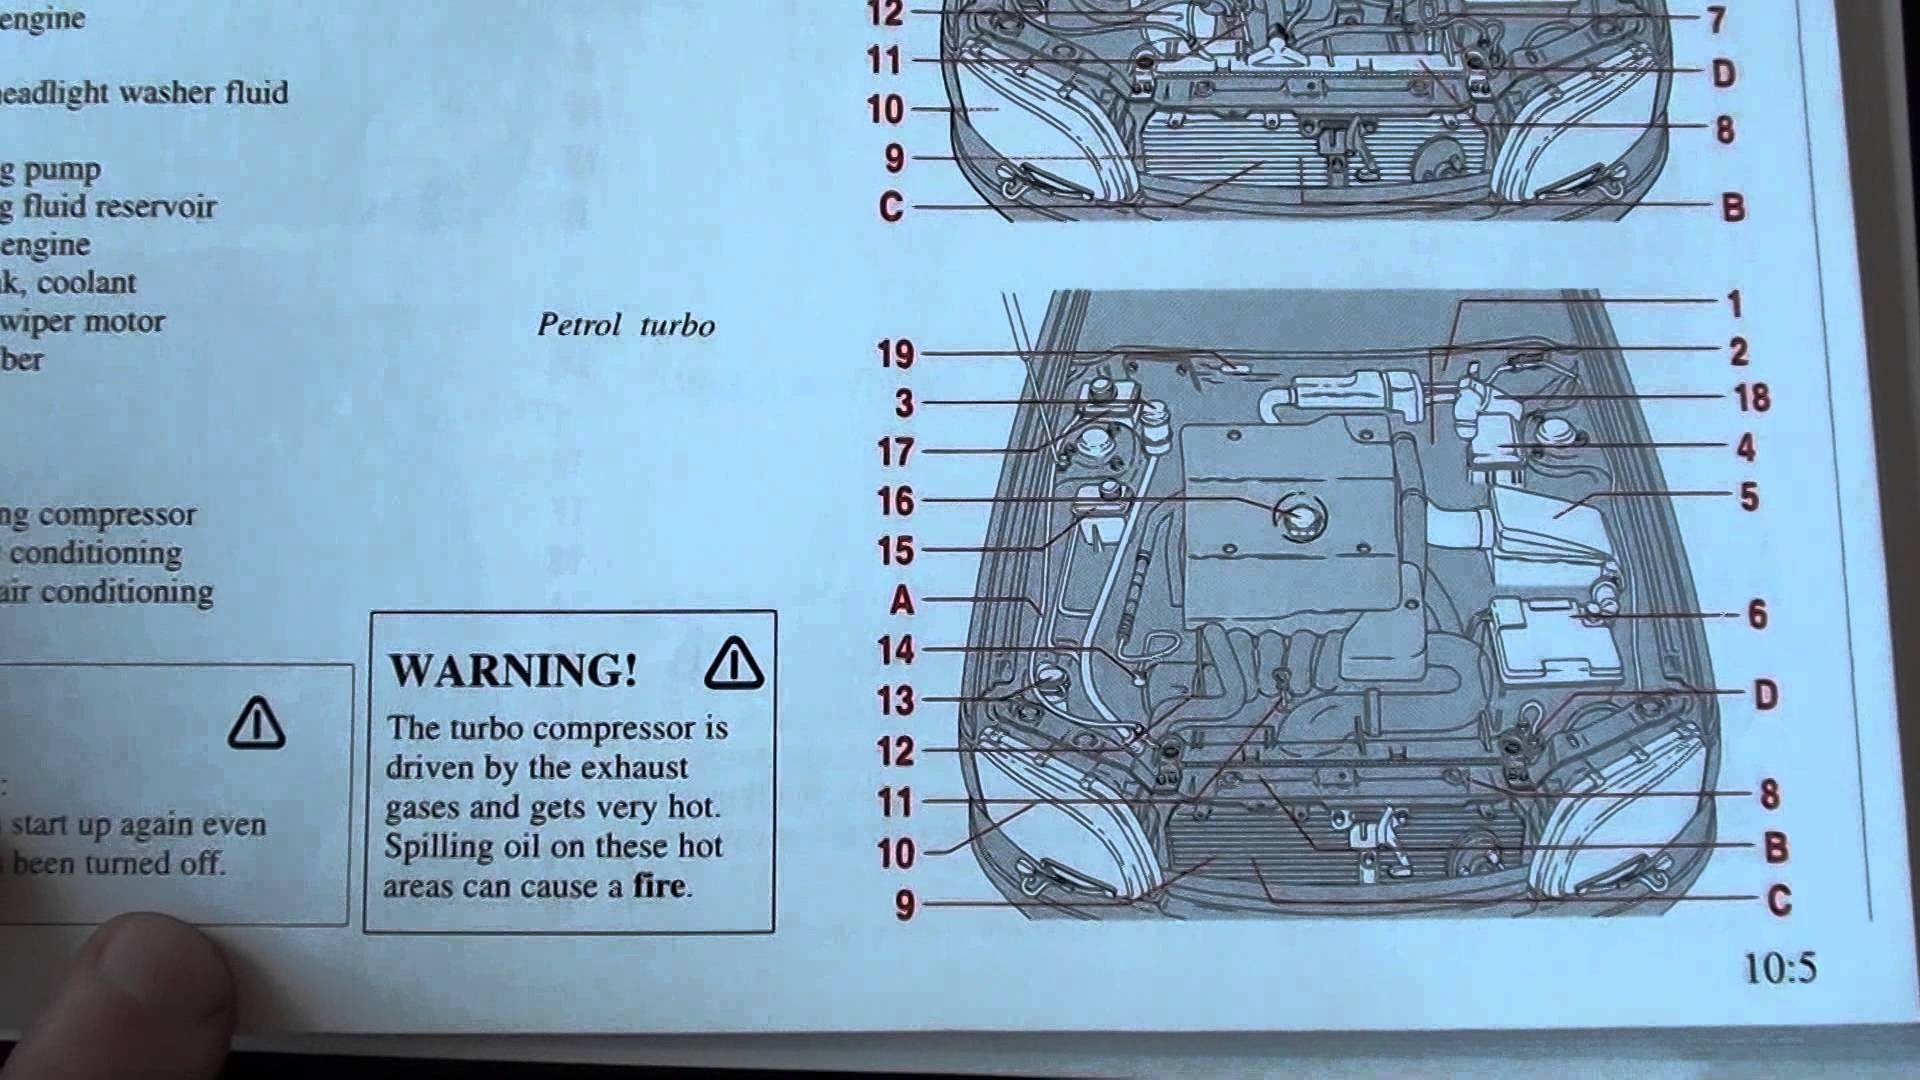 Volvo V70 Engine Diagram I Just Bought A 1999 Have Not Related Post